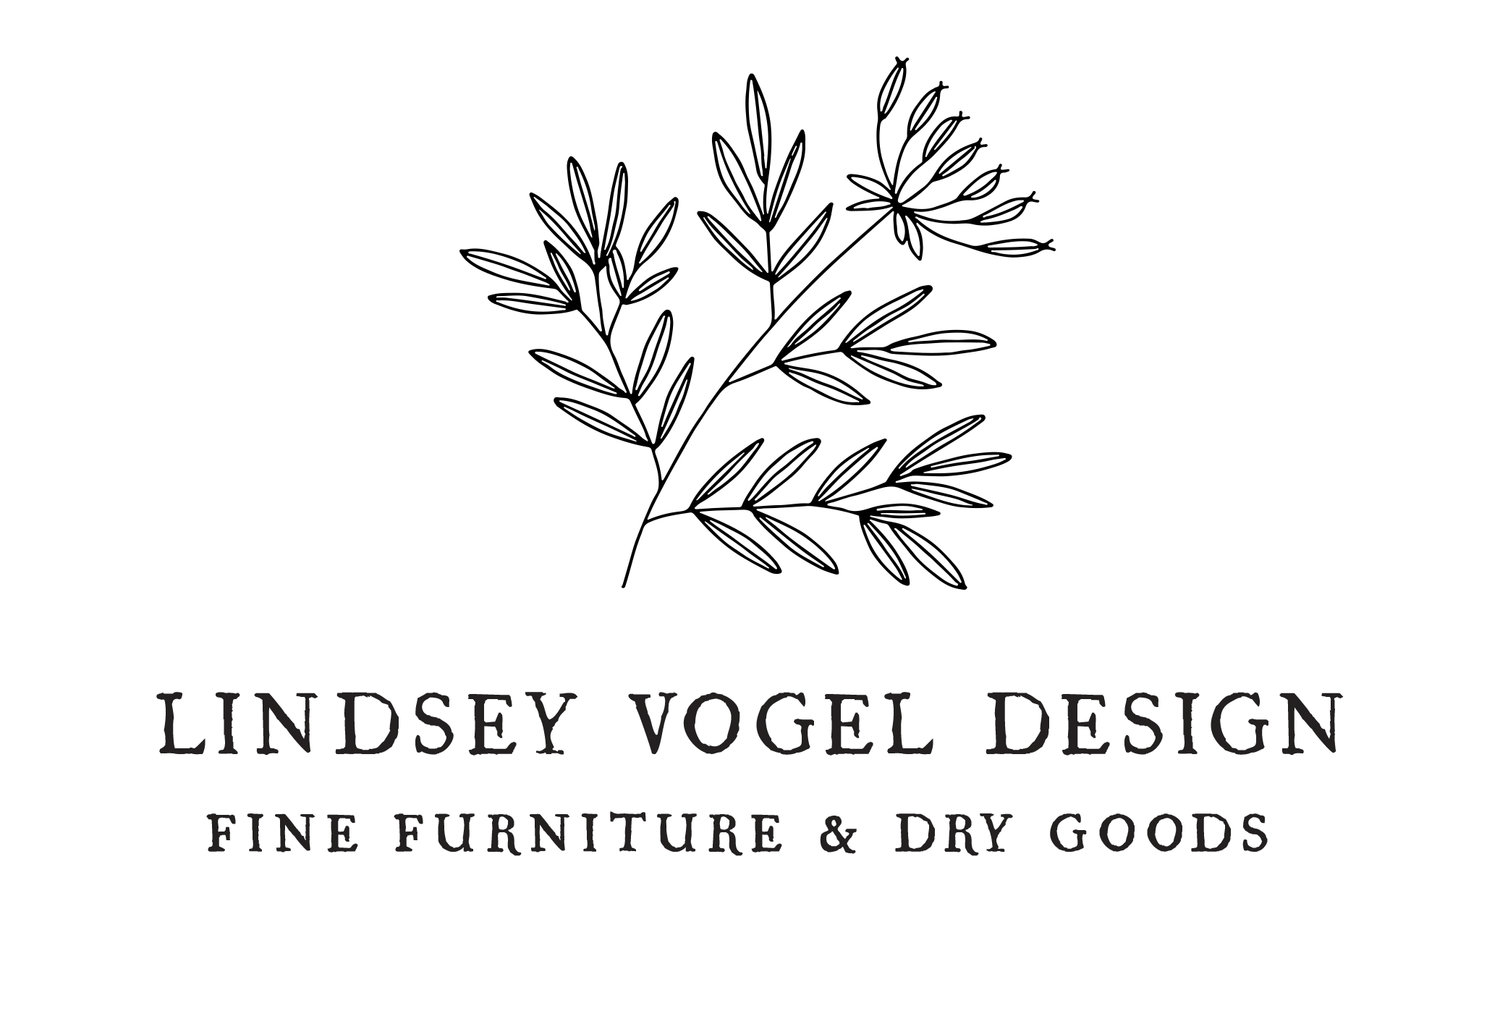 Lindsey Vogel Design